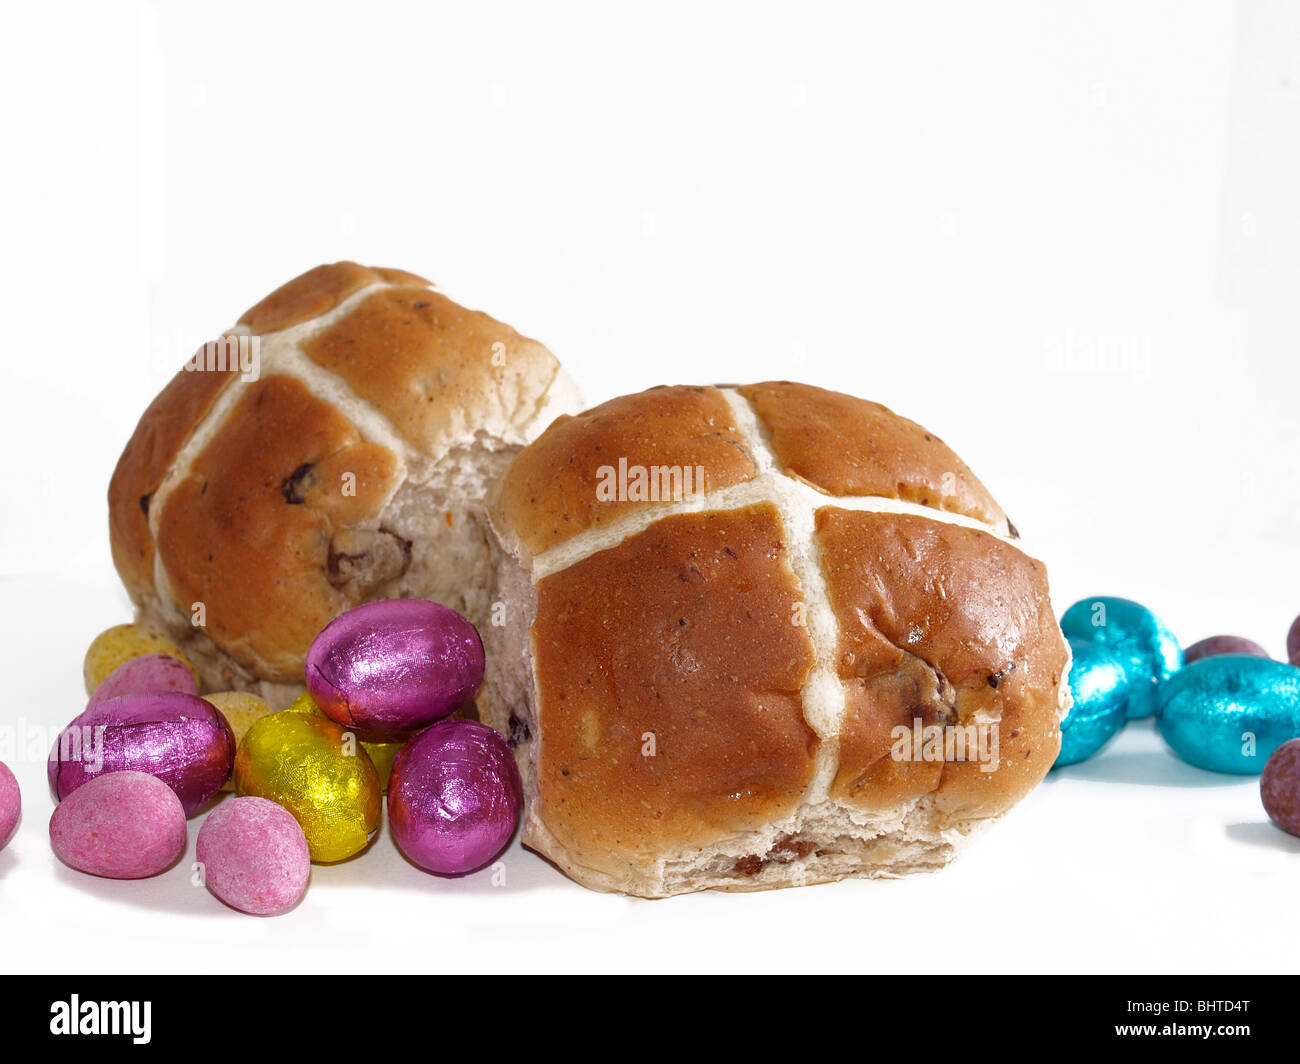 how to eat chocolate hot cross buns